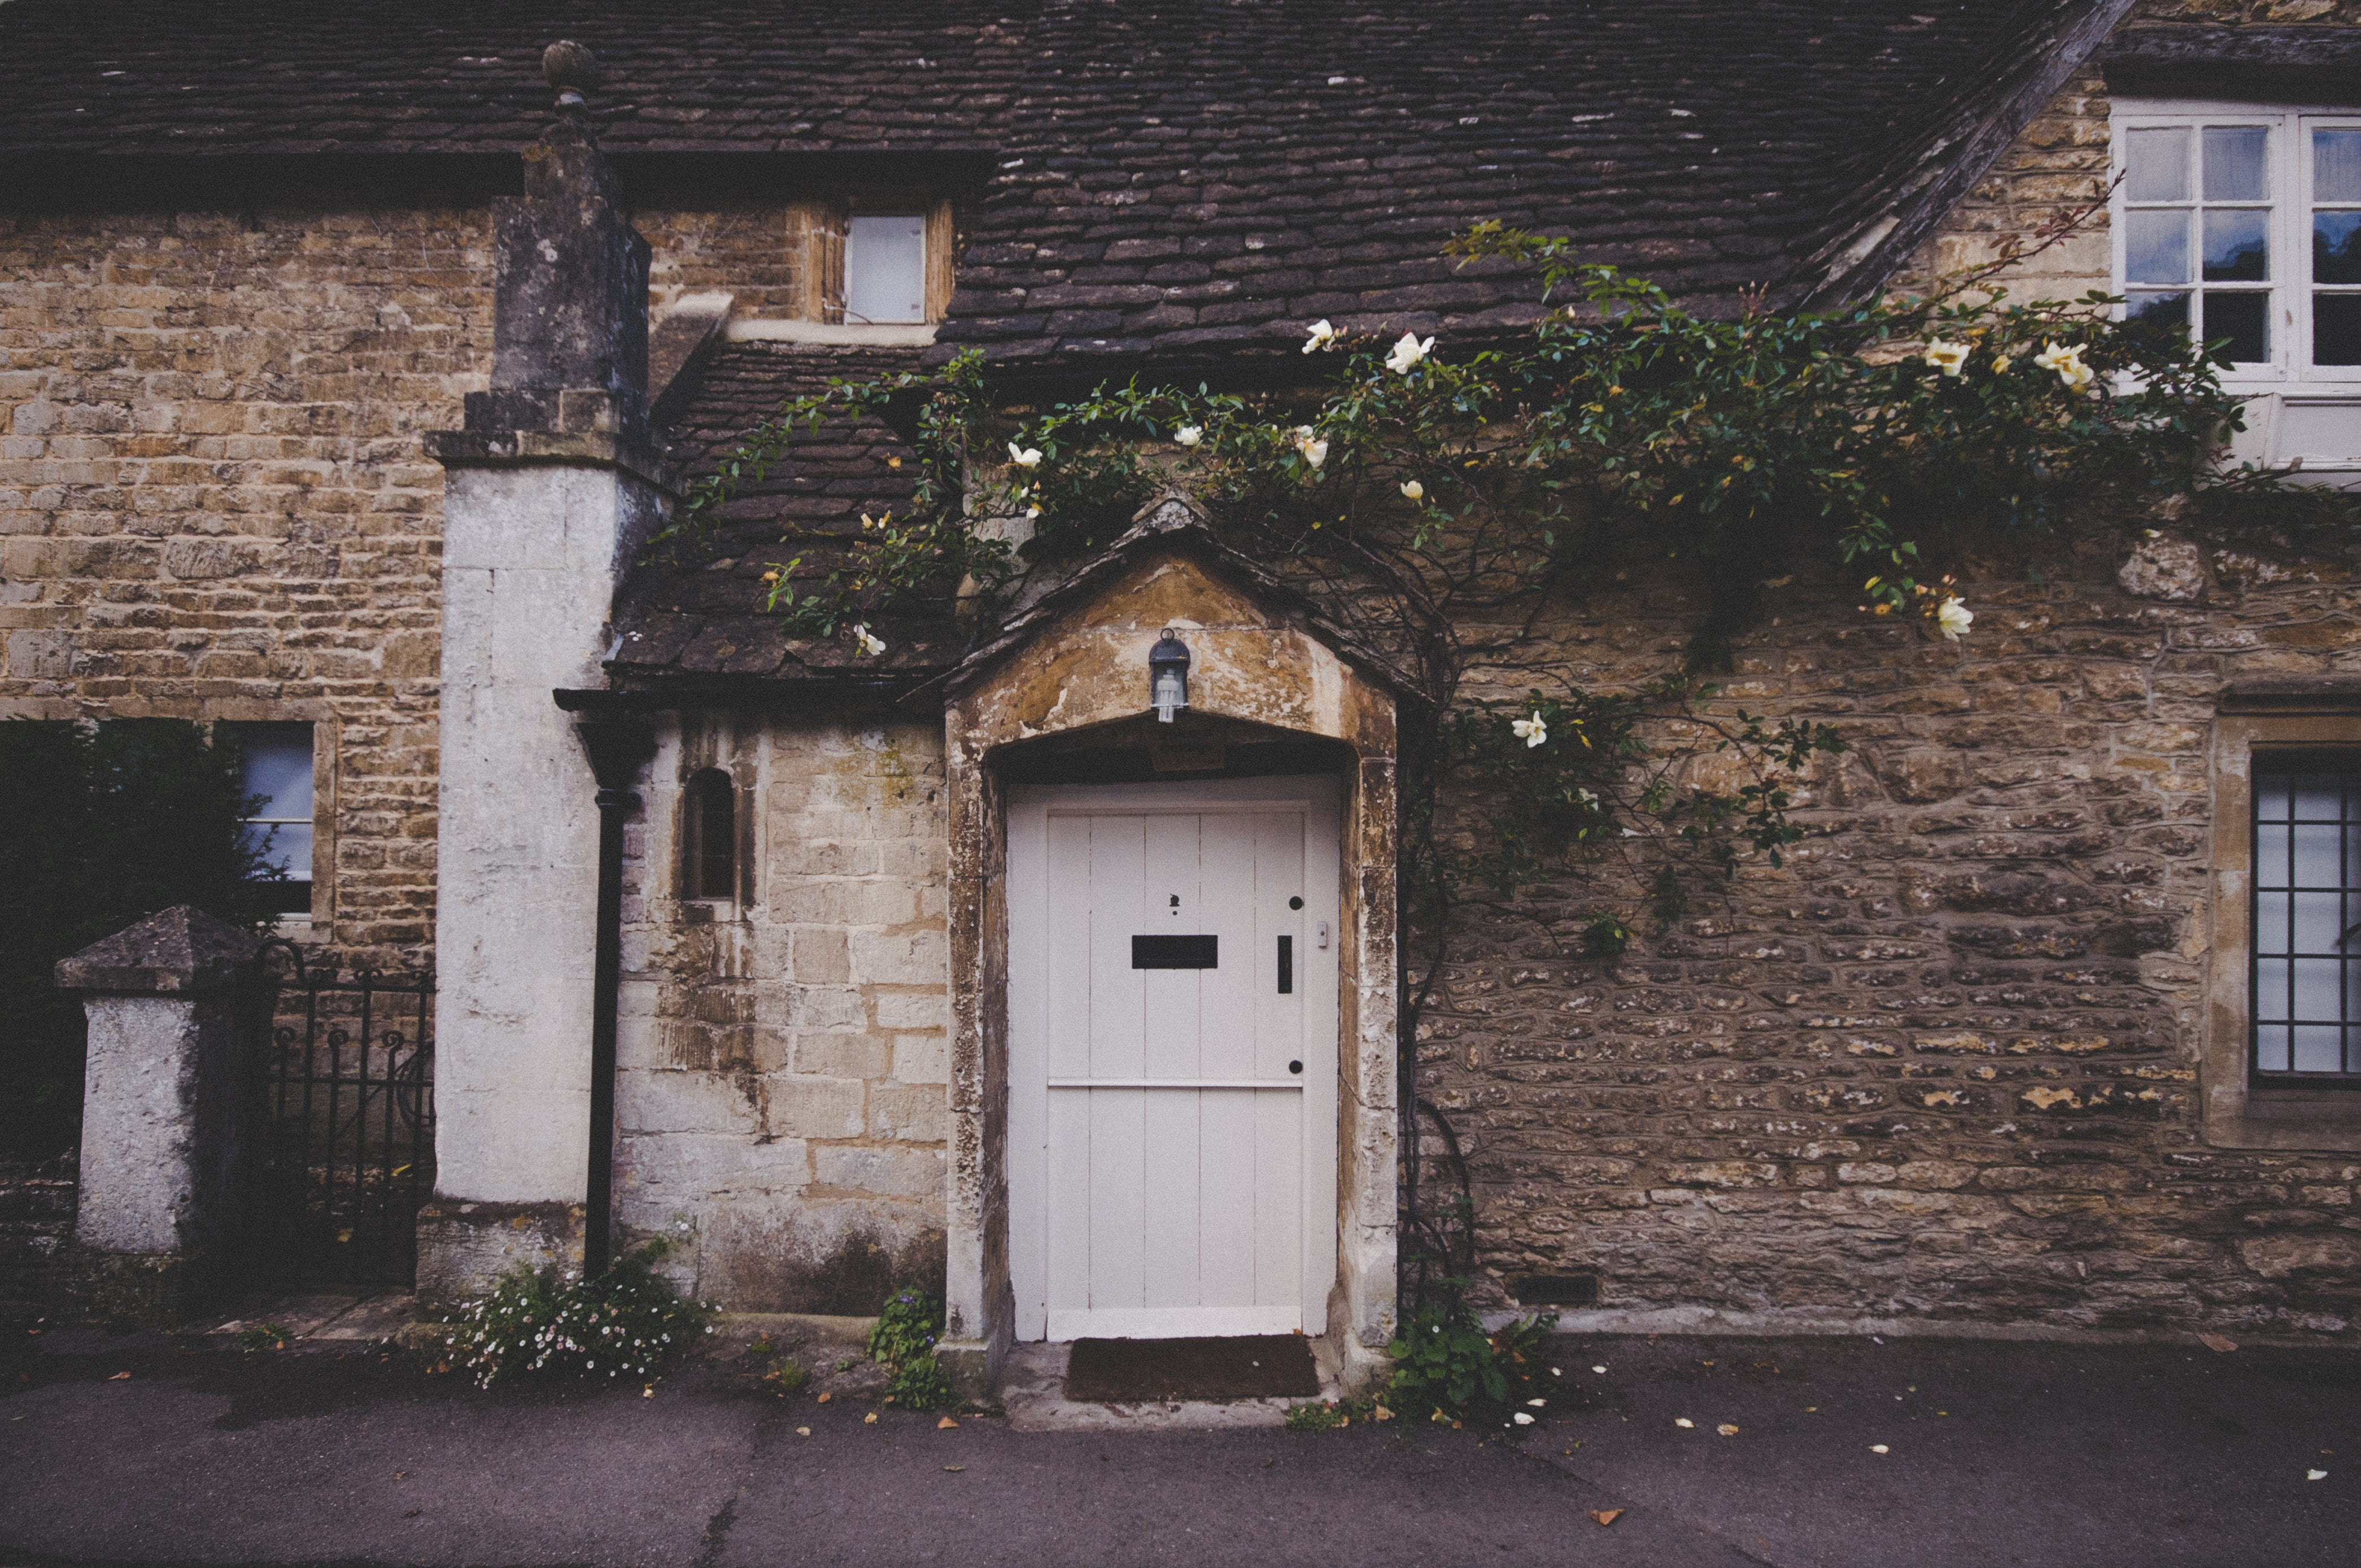 outside of a cottage with a white door